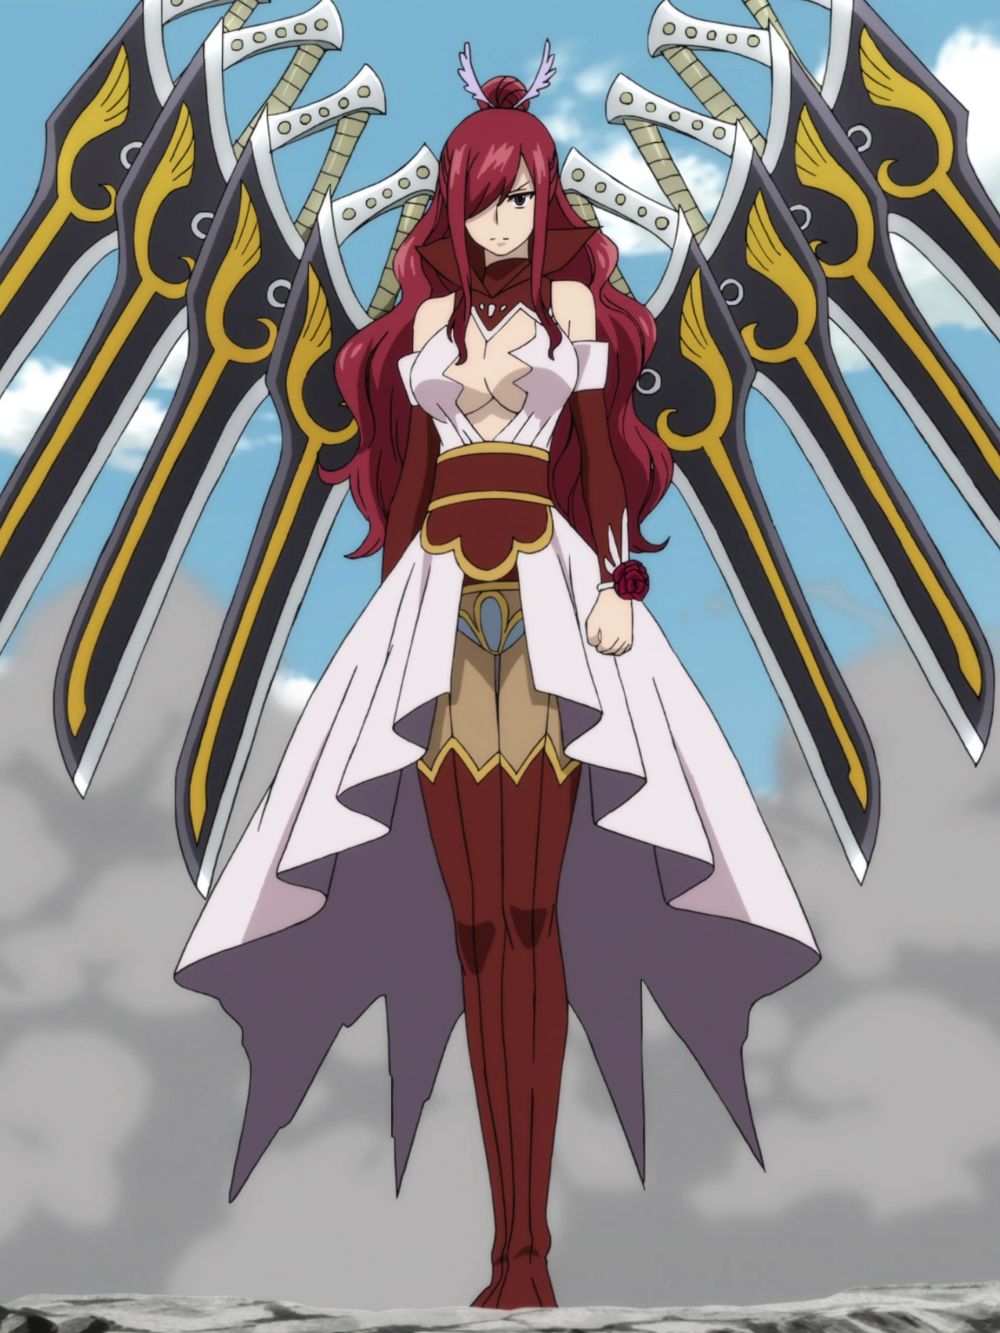 Ataraxia Armor Is An Armor Of Erza Scarlet S This Armor Takes Form Of A Beautiful White Revealin Fairy Tail Erza Scarlet Fairy Tail Anime Fairy Tail Pictures